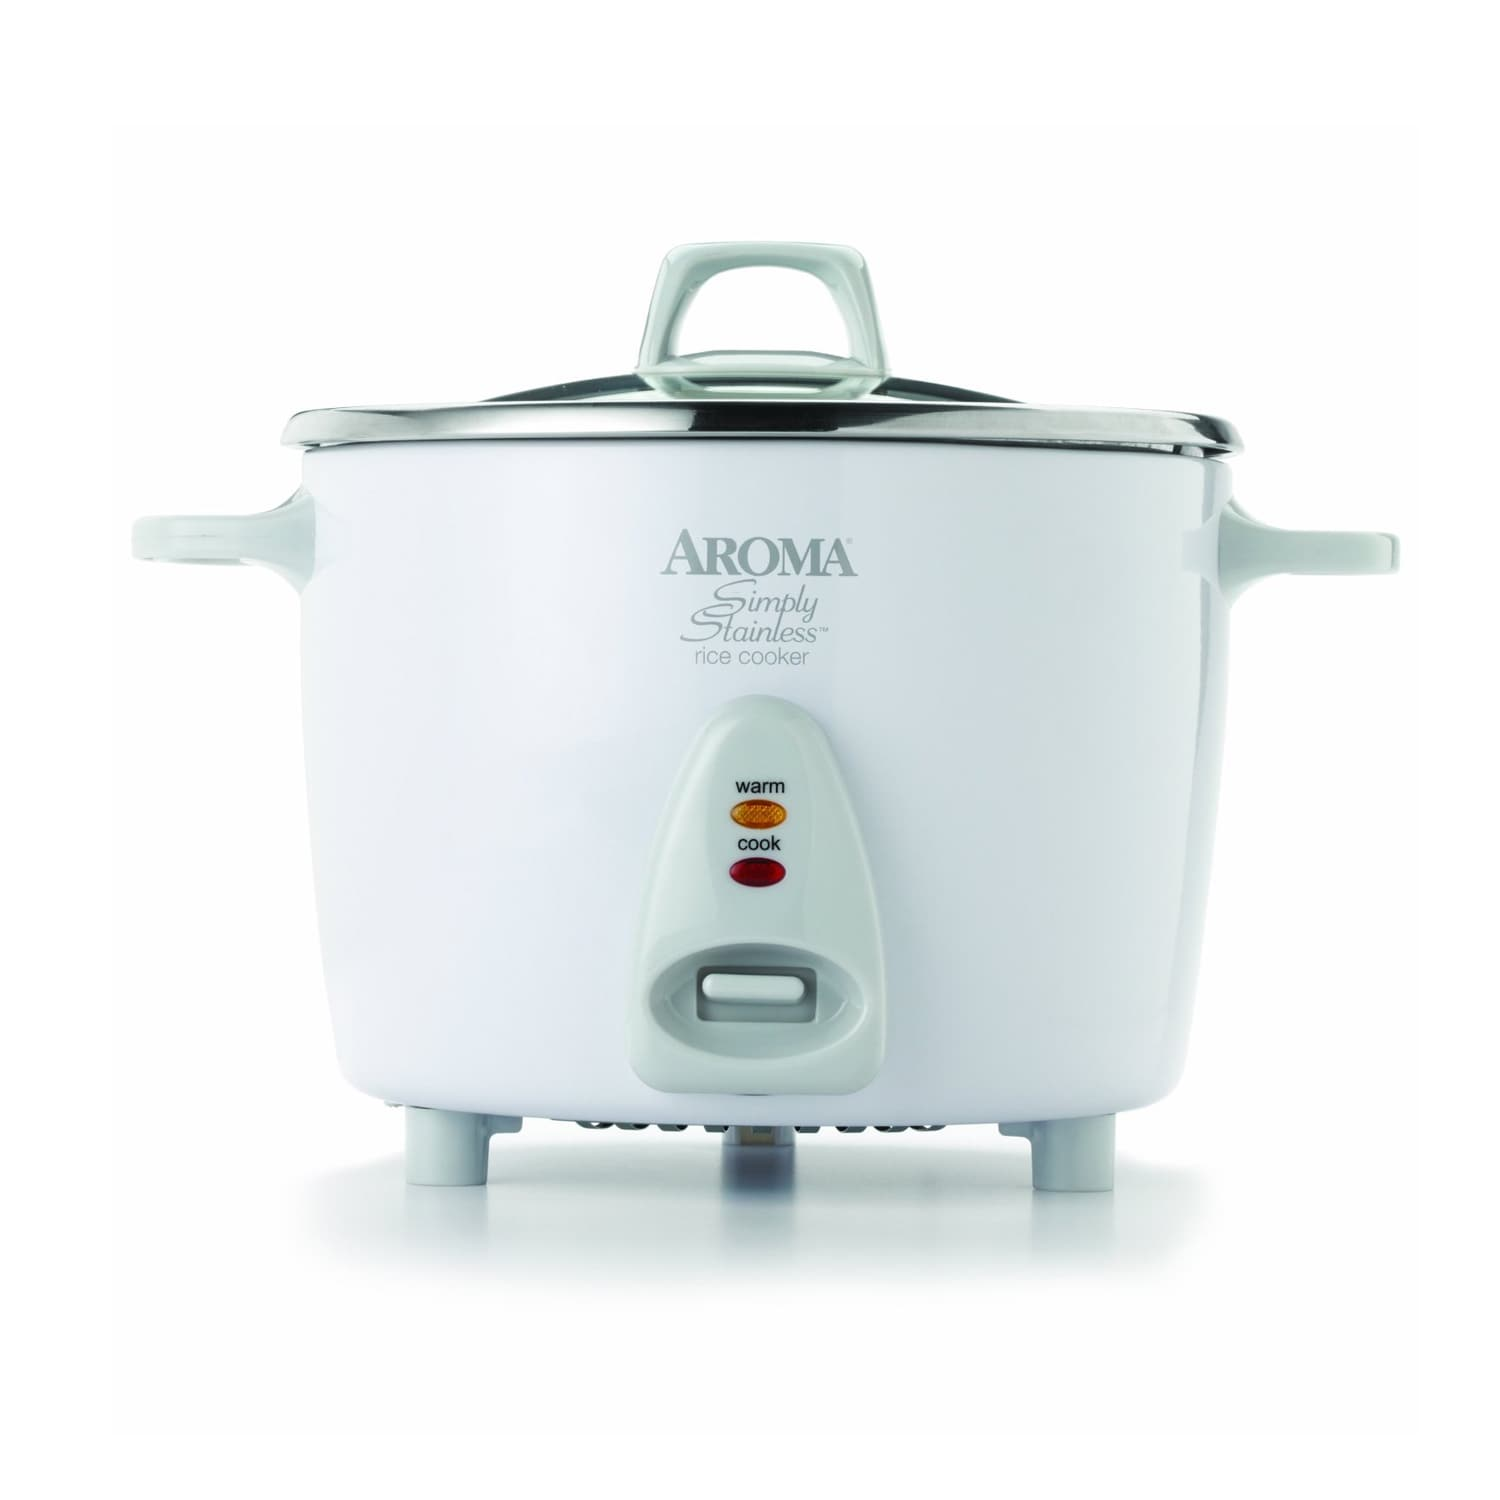 Aroma Housewares 14-cup Simply Stainless Rice Cooker, Sil...